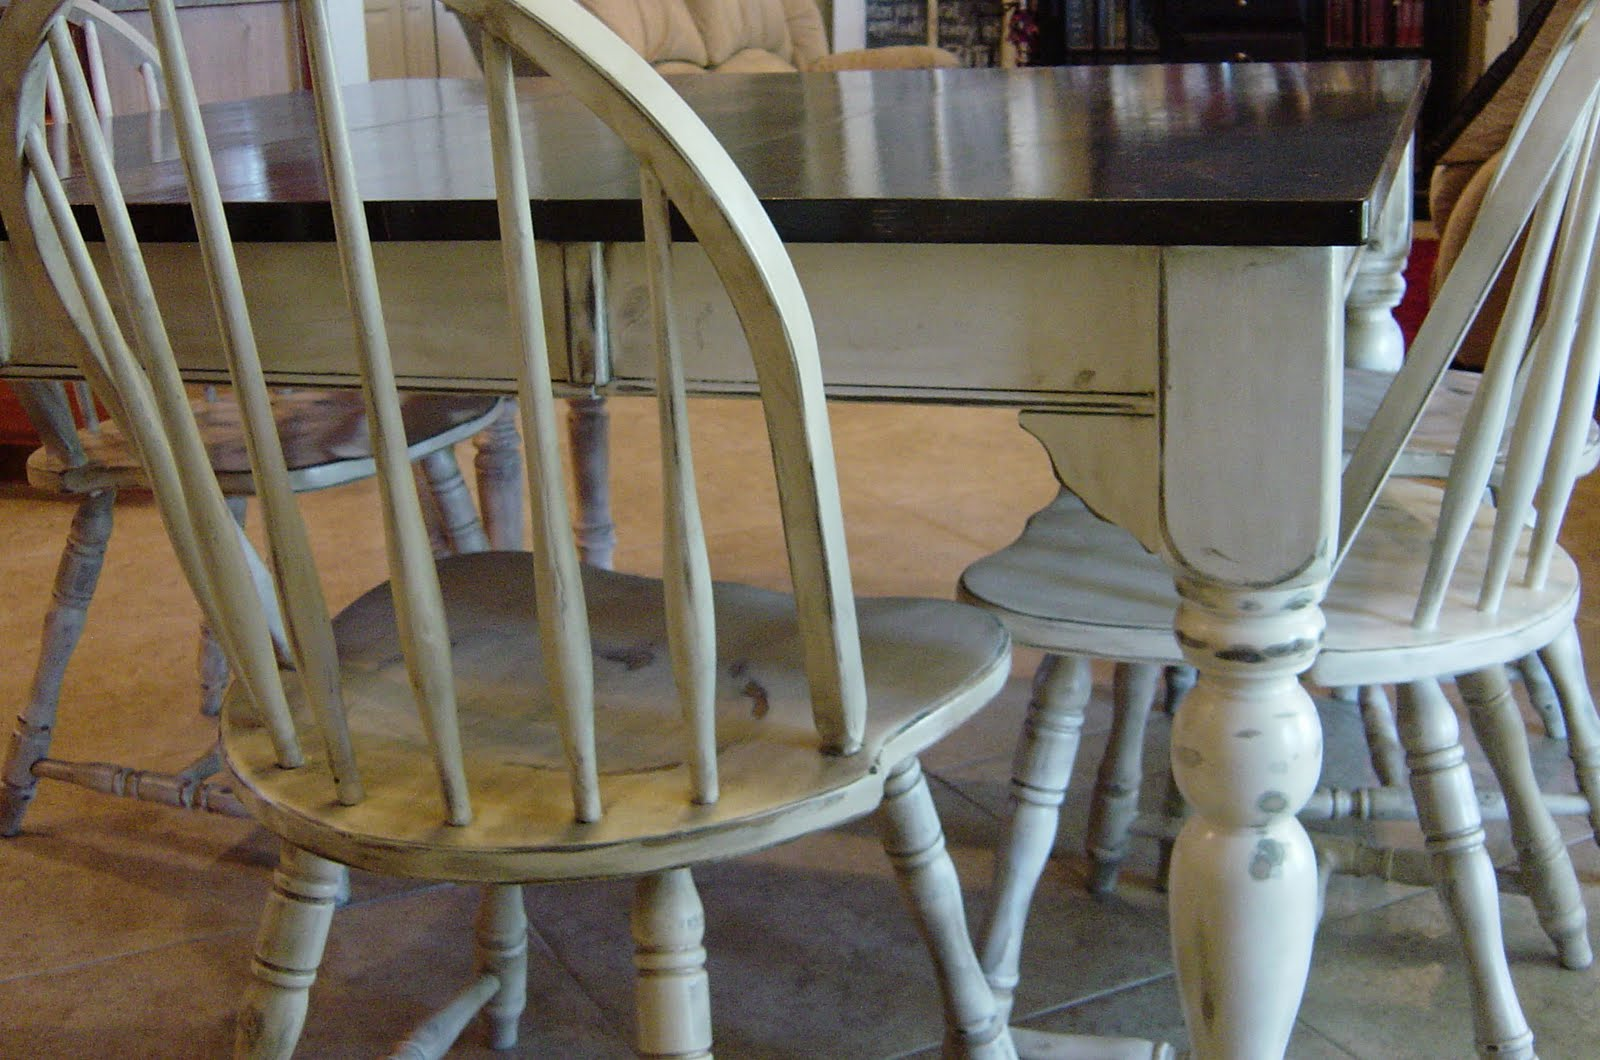 Remodelaholic Kitchen Table Refinished With Distressed Look - Distressed dark wood dining table